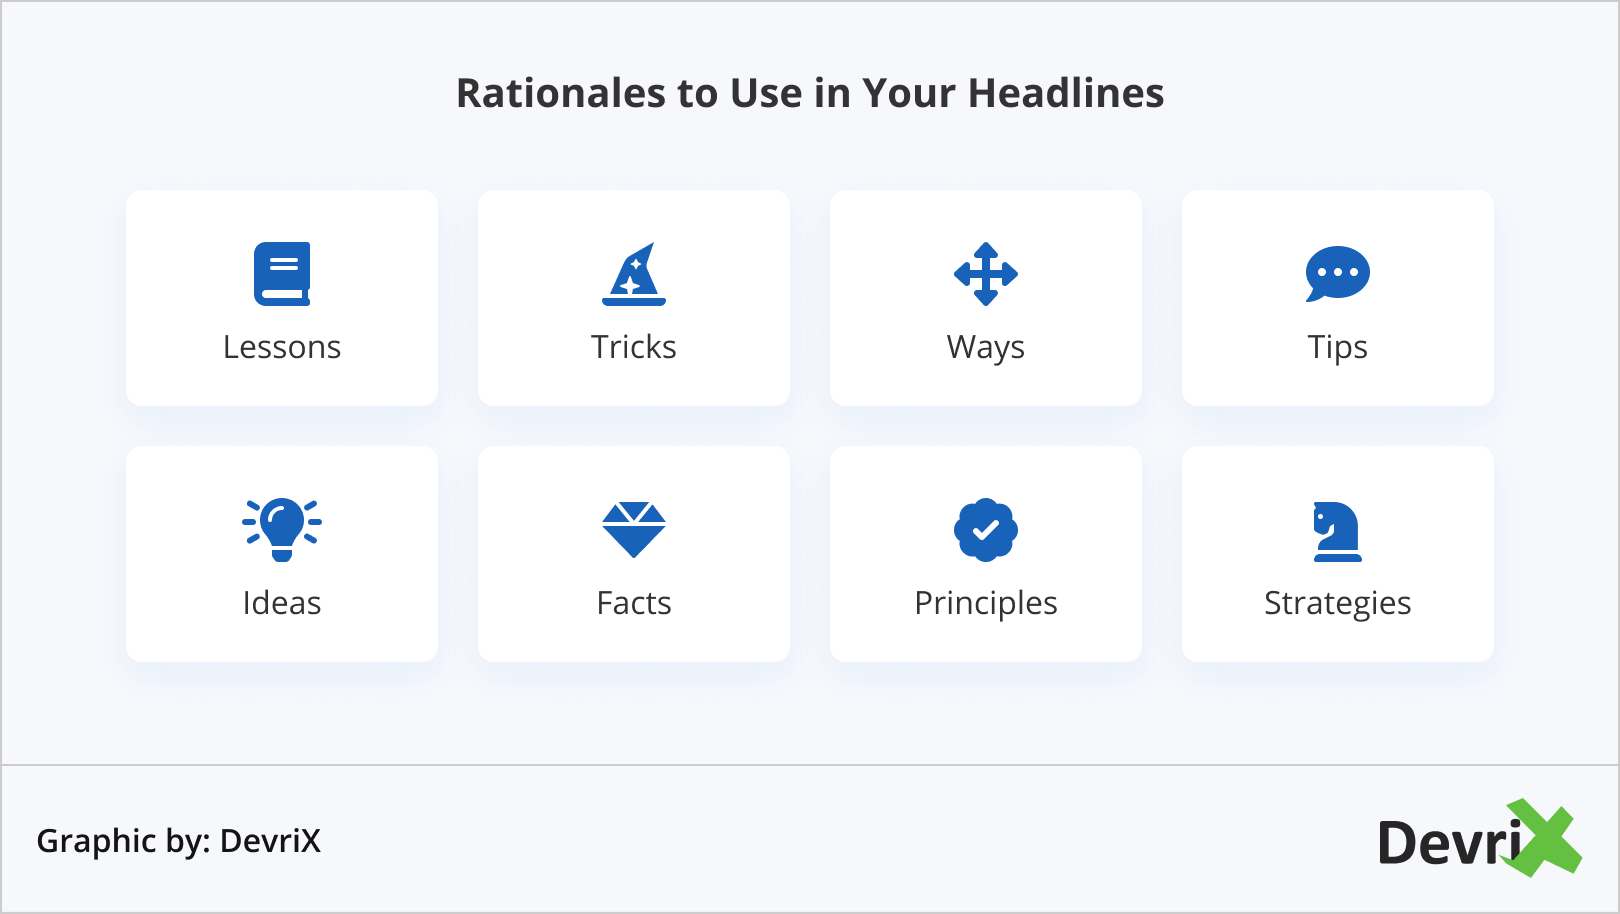 Rationales to Use in Your Headlines